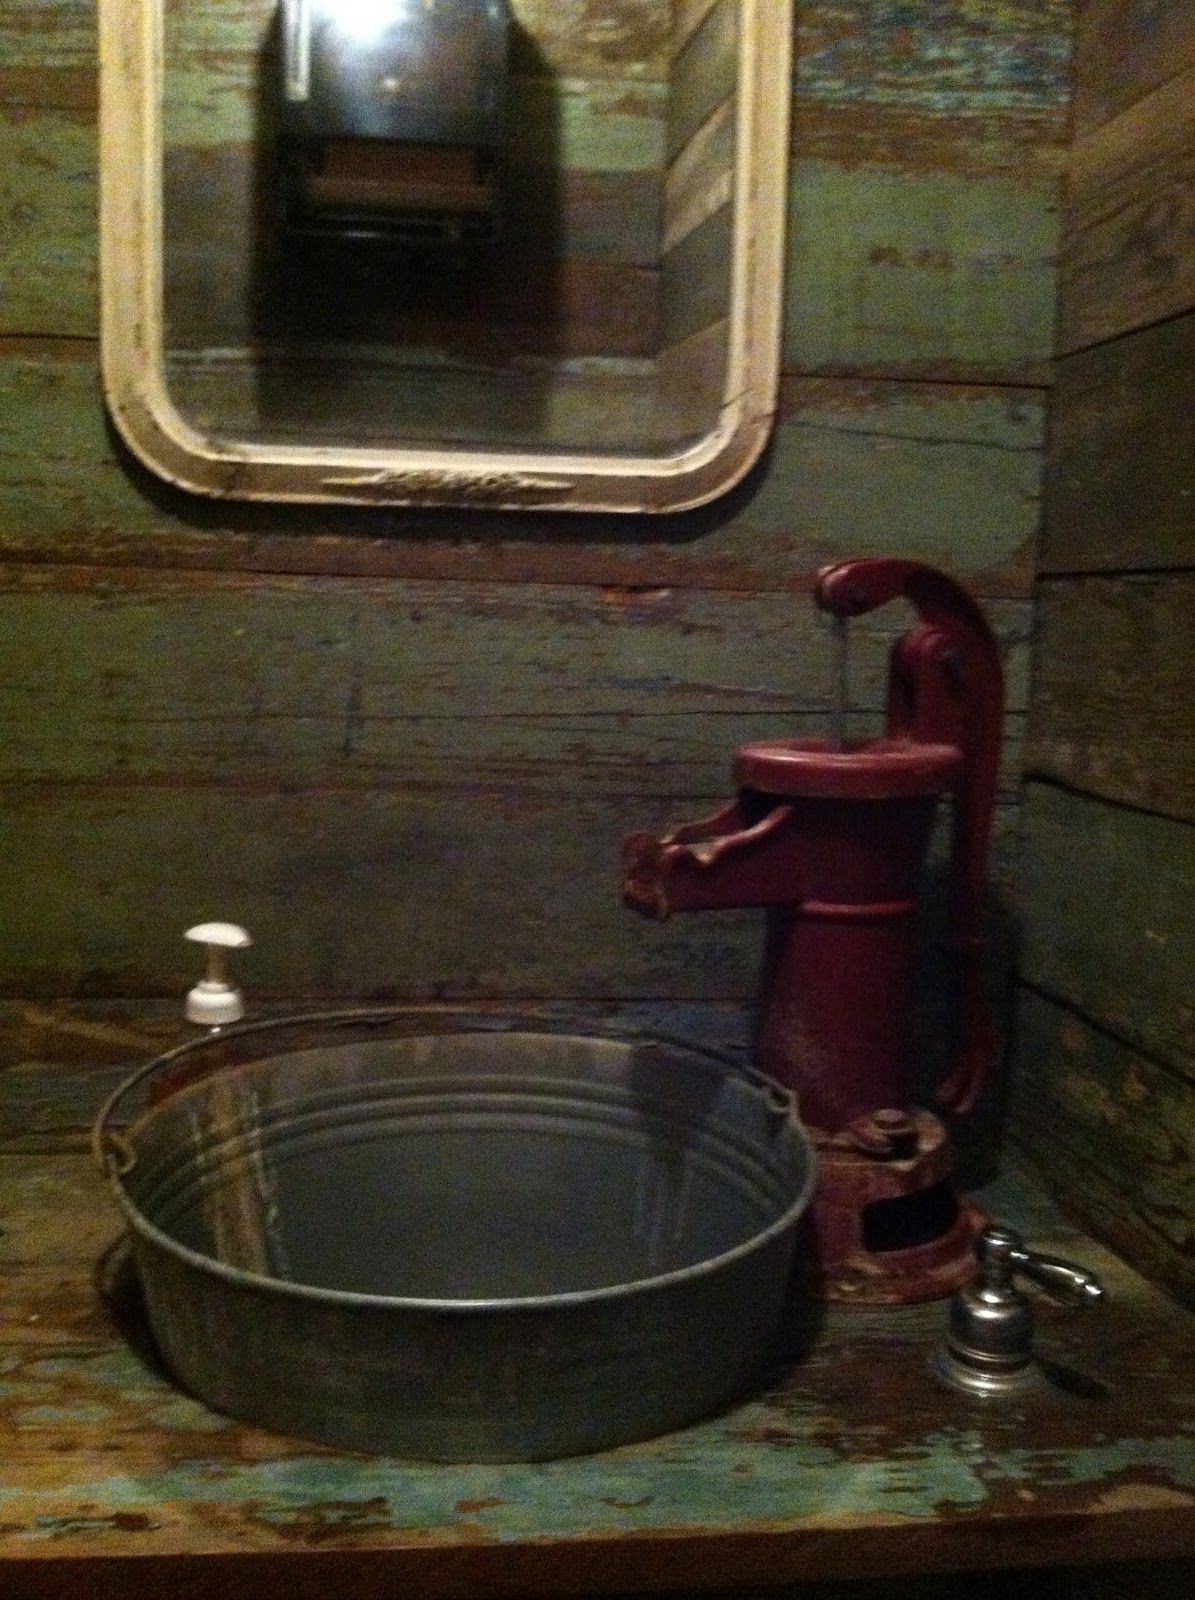 Merveilleux A Bathroom Sink For The Cabin Themed Home   Just Not At All Practical